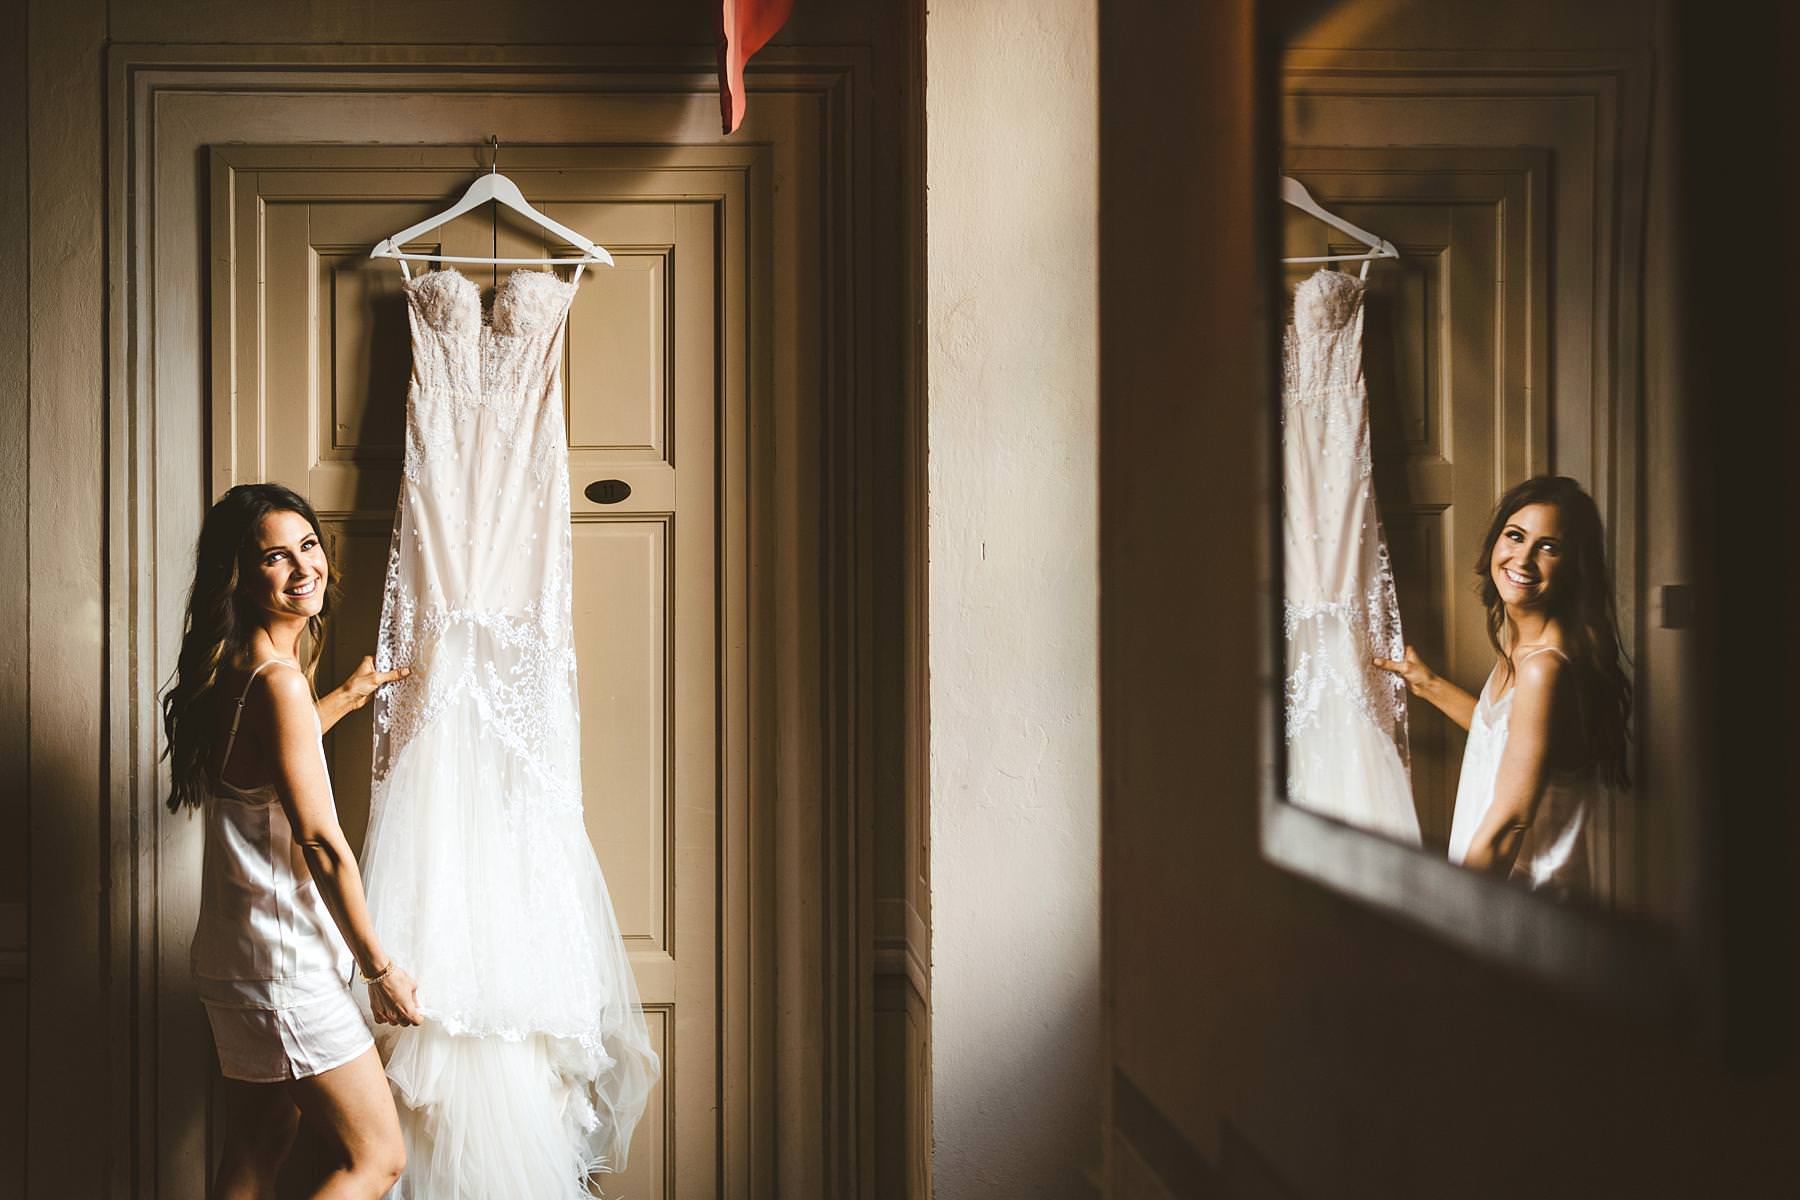 Lovely bride Georgie during her getting ready in the historical residence of Villa Il Poggiale in Chianti. Modern and unusual wedding framed by the olive groves of Chianti